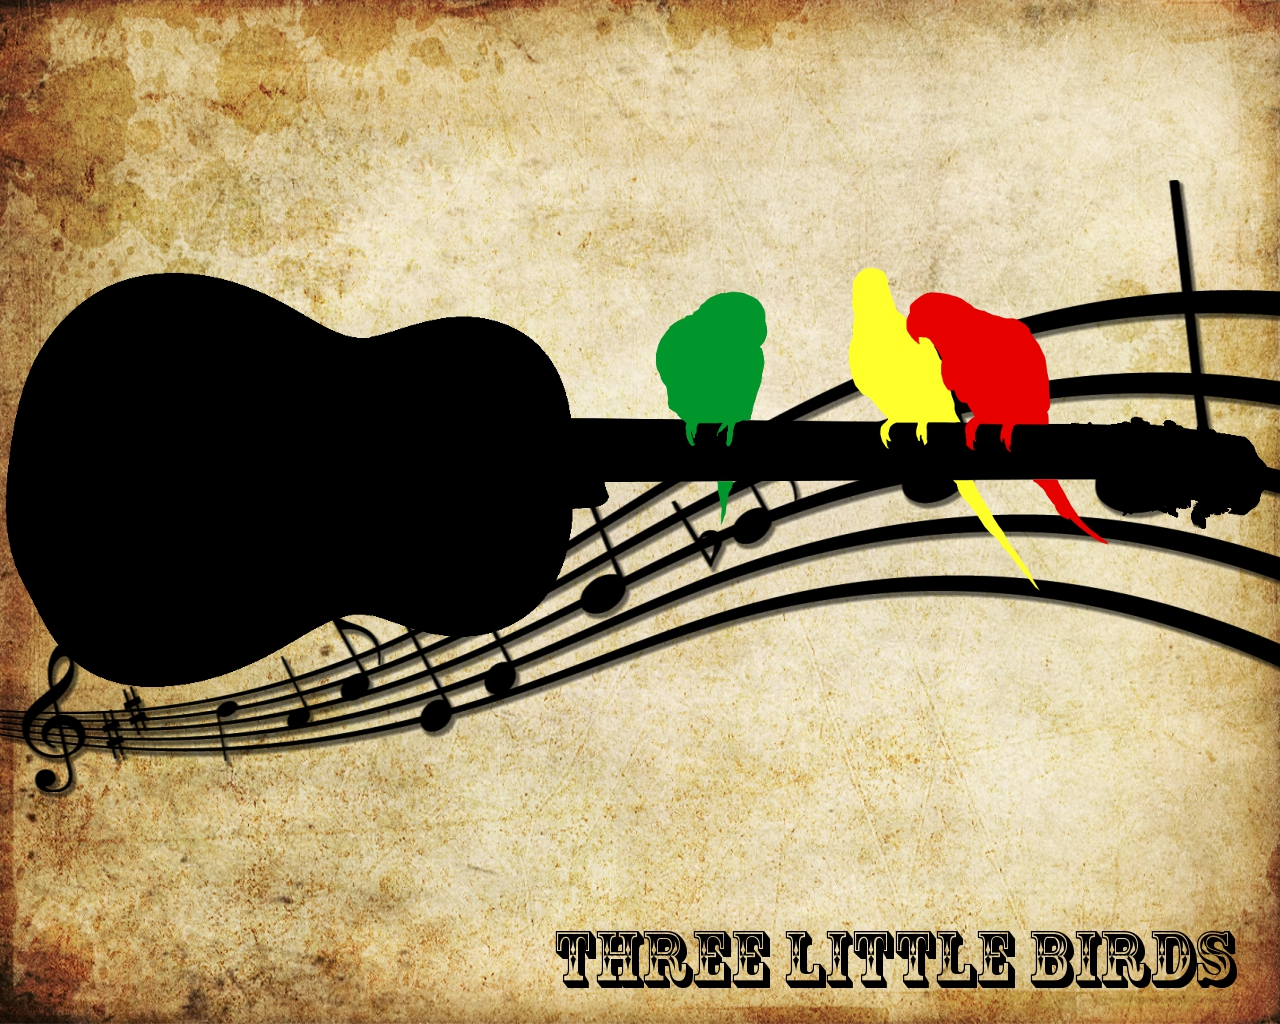 download three little birds wallpaper gallery